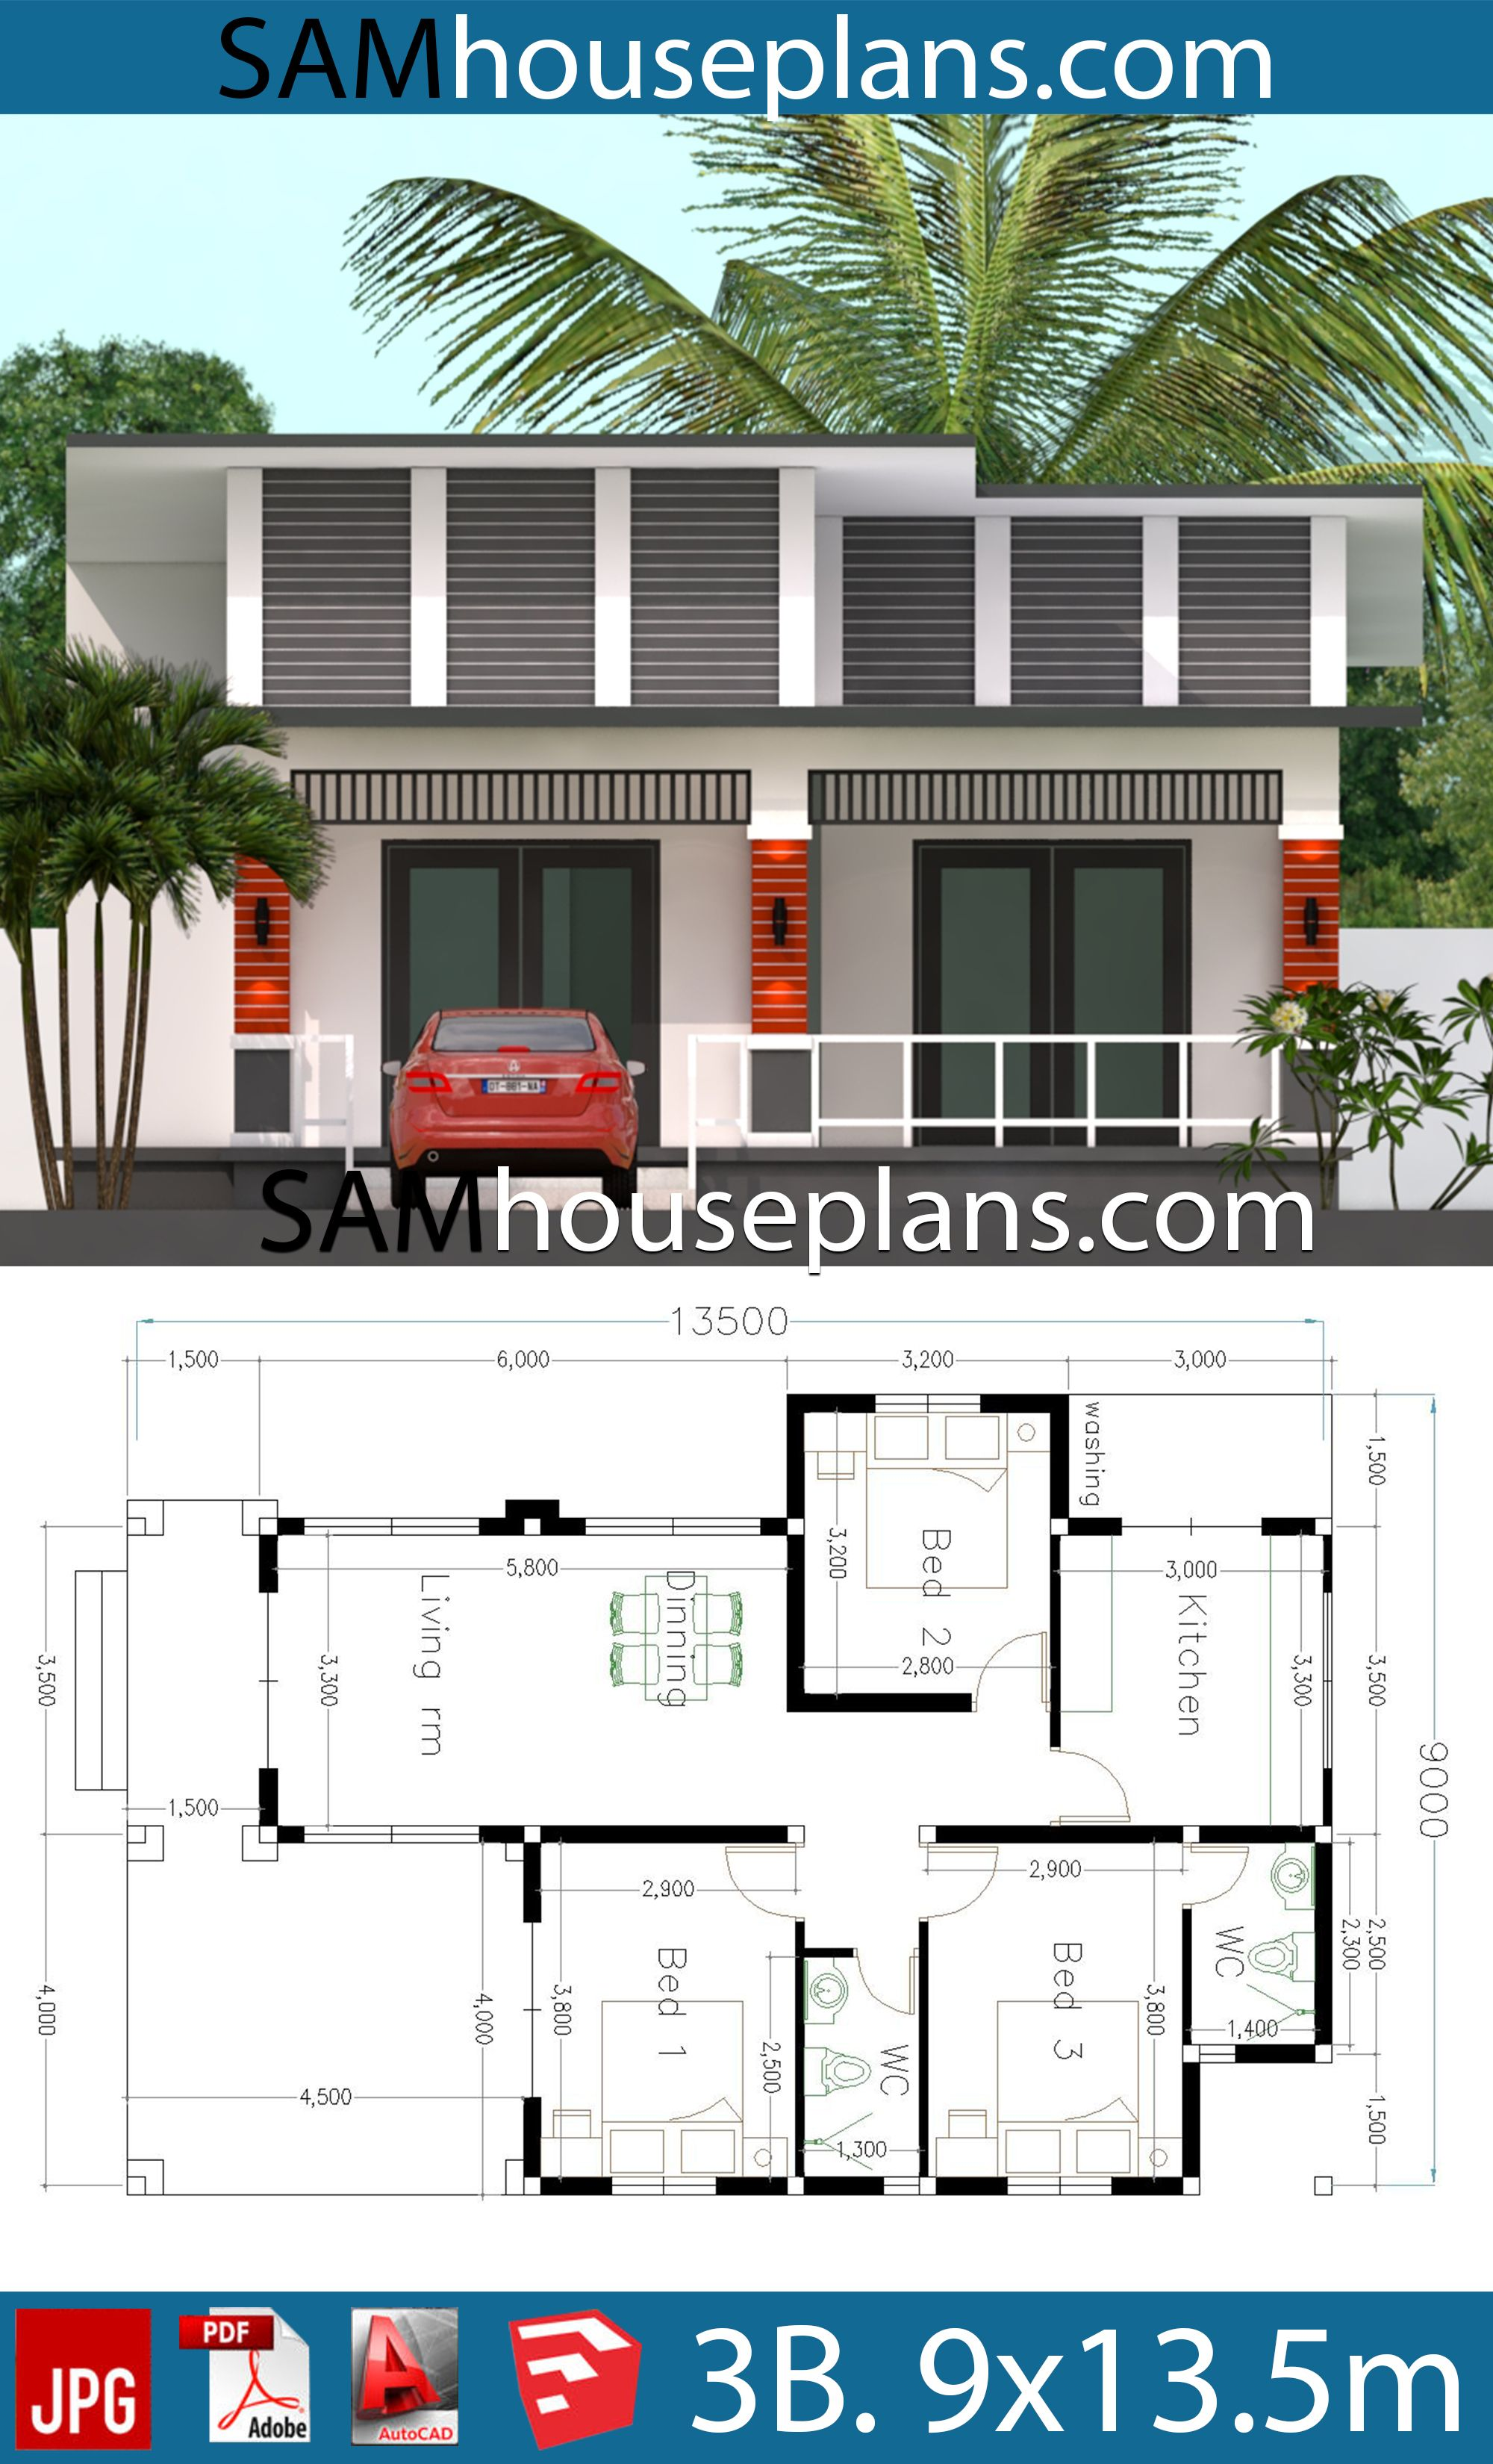 House Plans 9x13 5 With 3 Bedrooms House Plans Free Downloads House Plans Bedroom House Plans Fantasy House